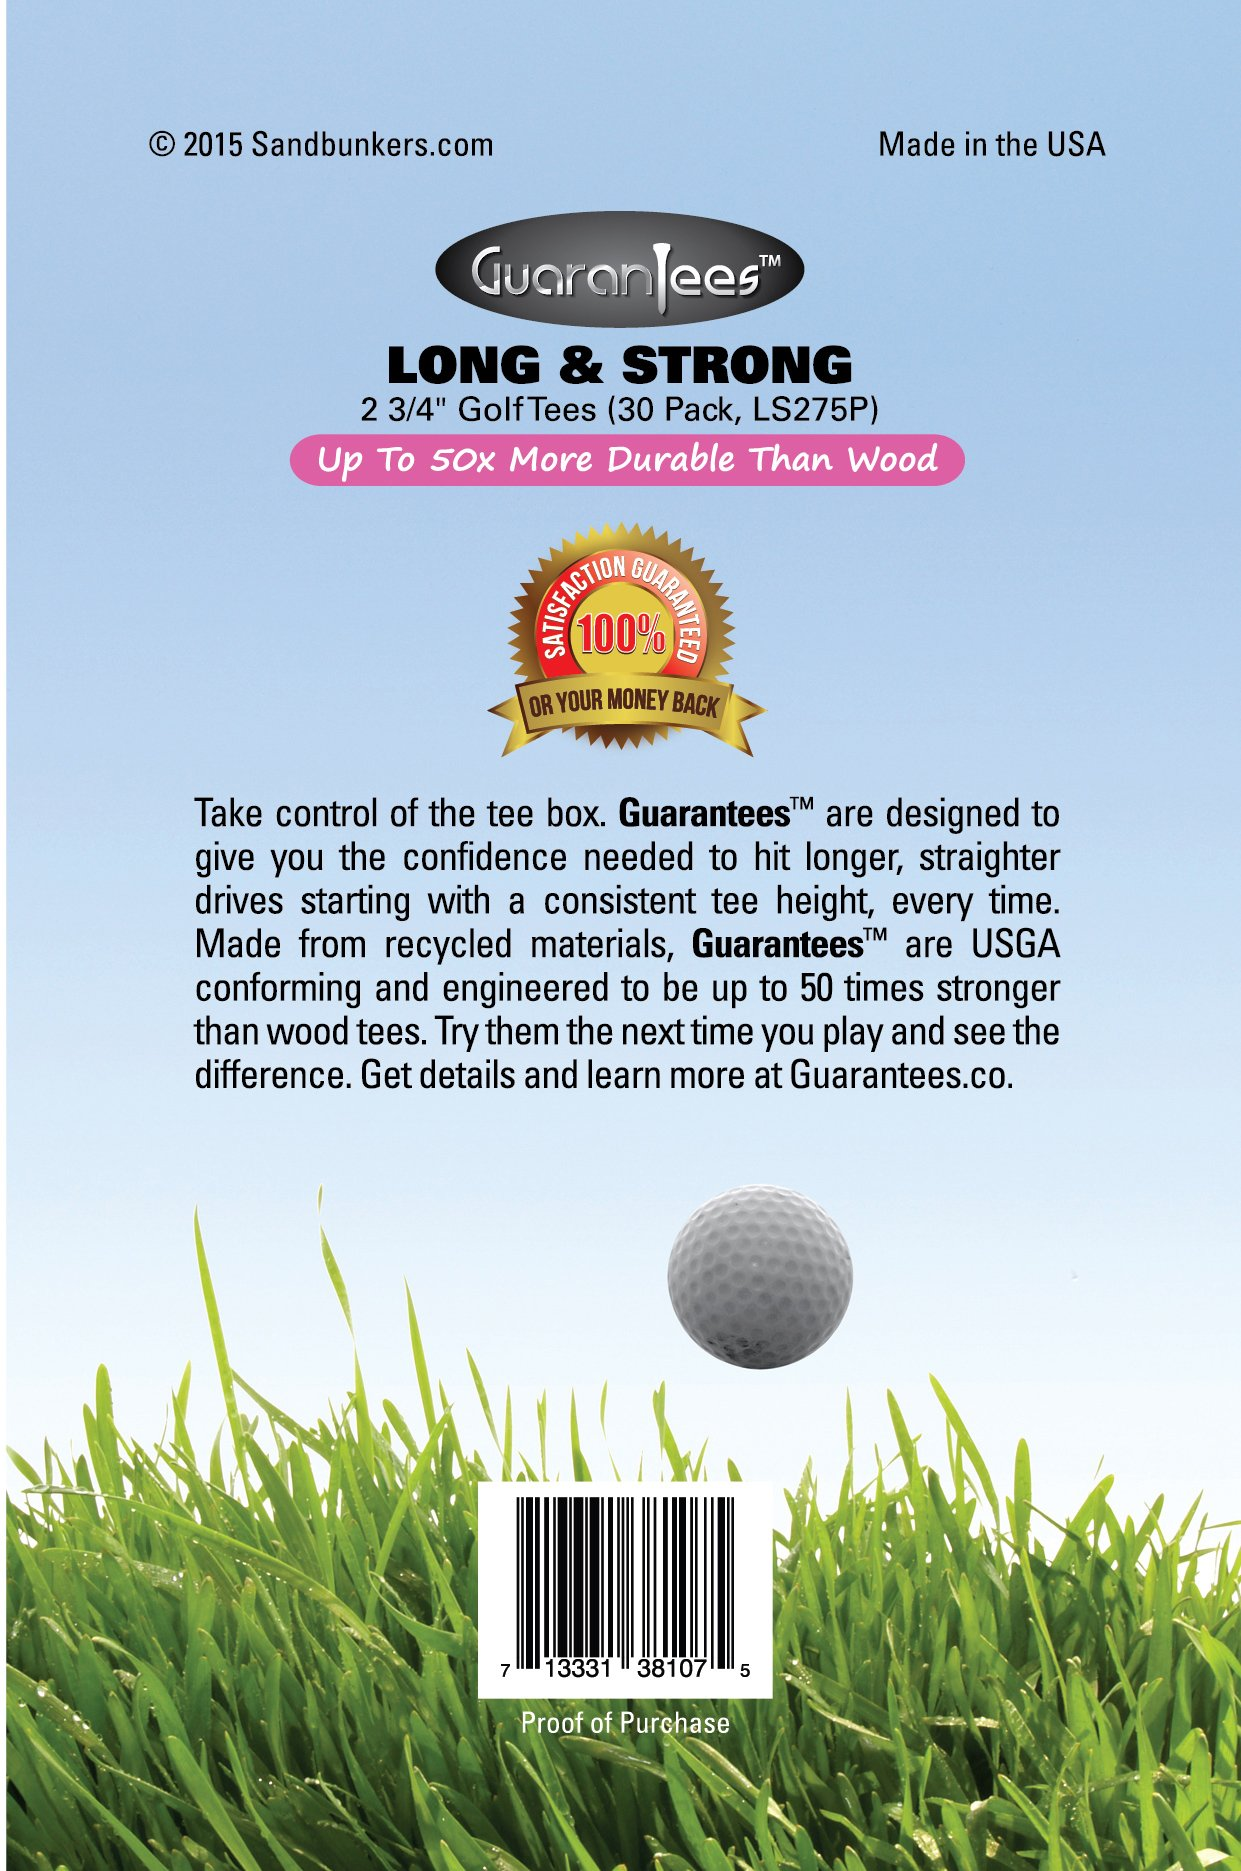 Pink Golf Tees, 2 3/4'' Inch Flexible Plastic, Low Friction, 30 Pack, Made in USA, GuaranTees by Sandbunkers (Image #2)